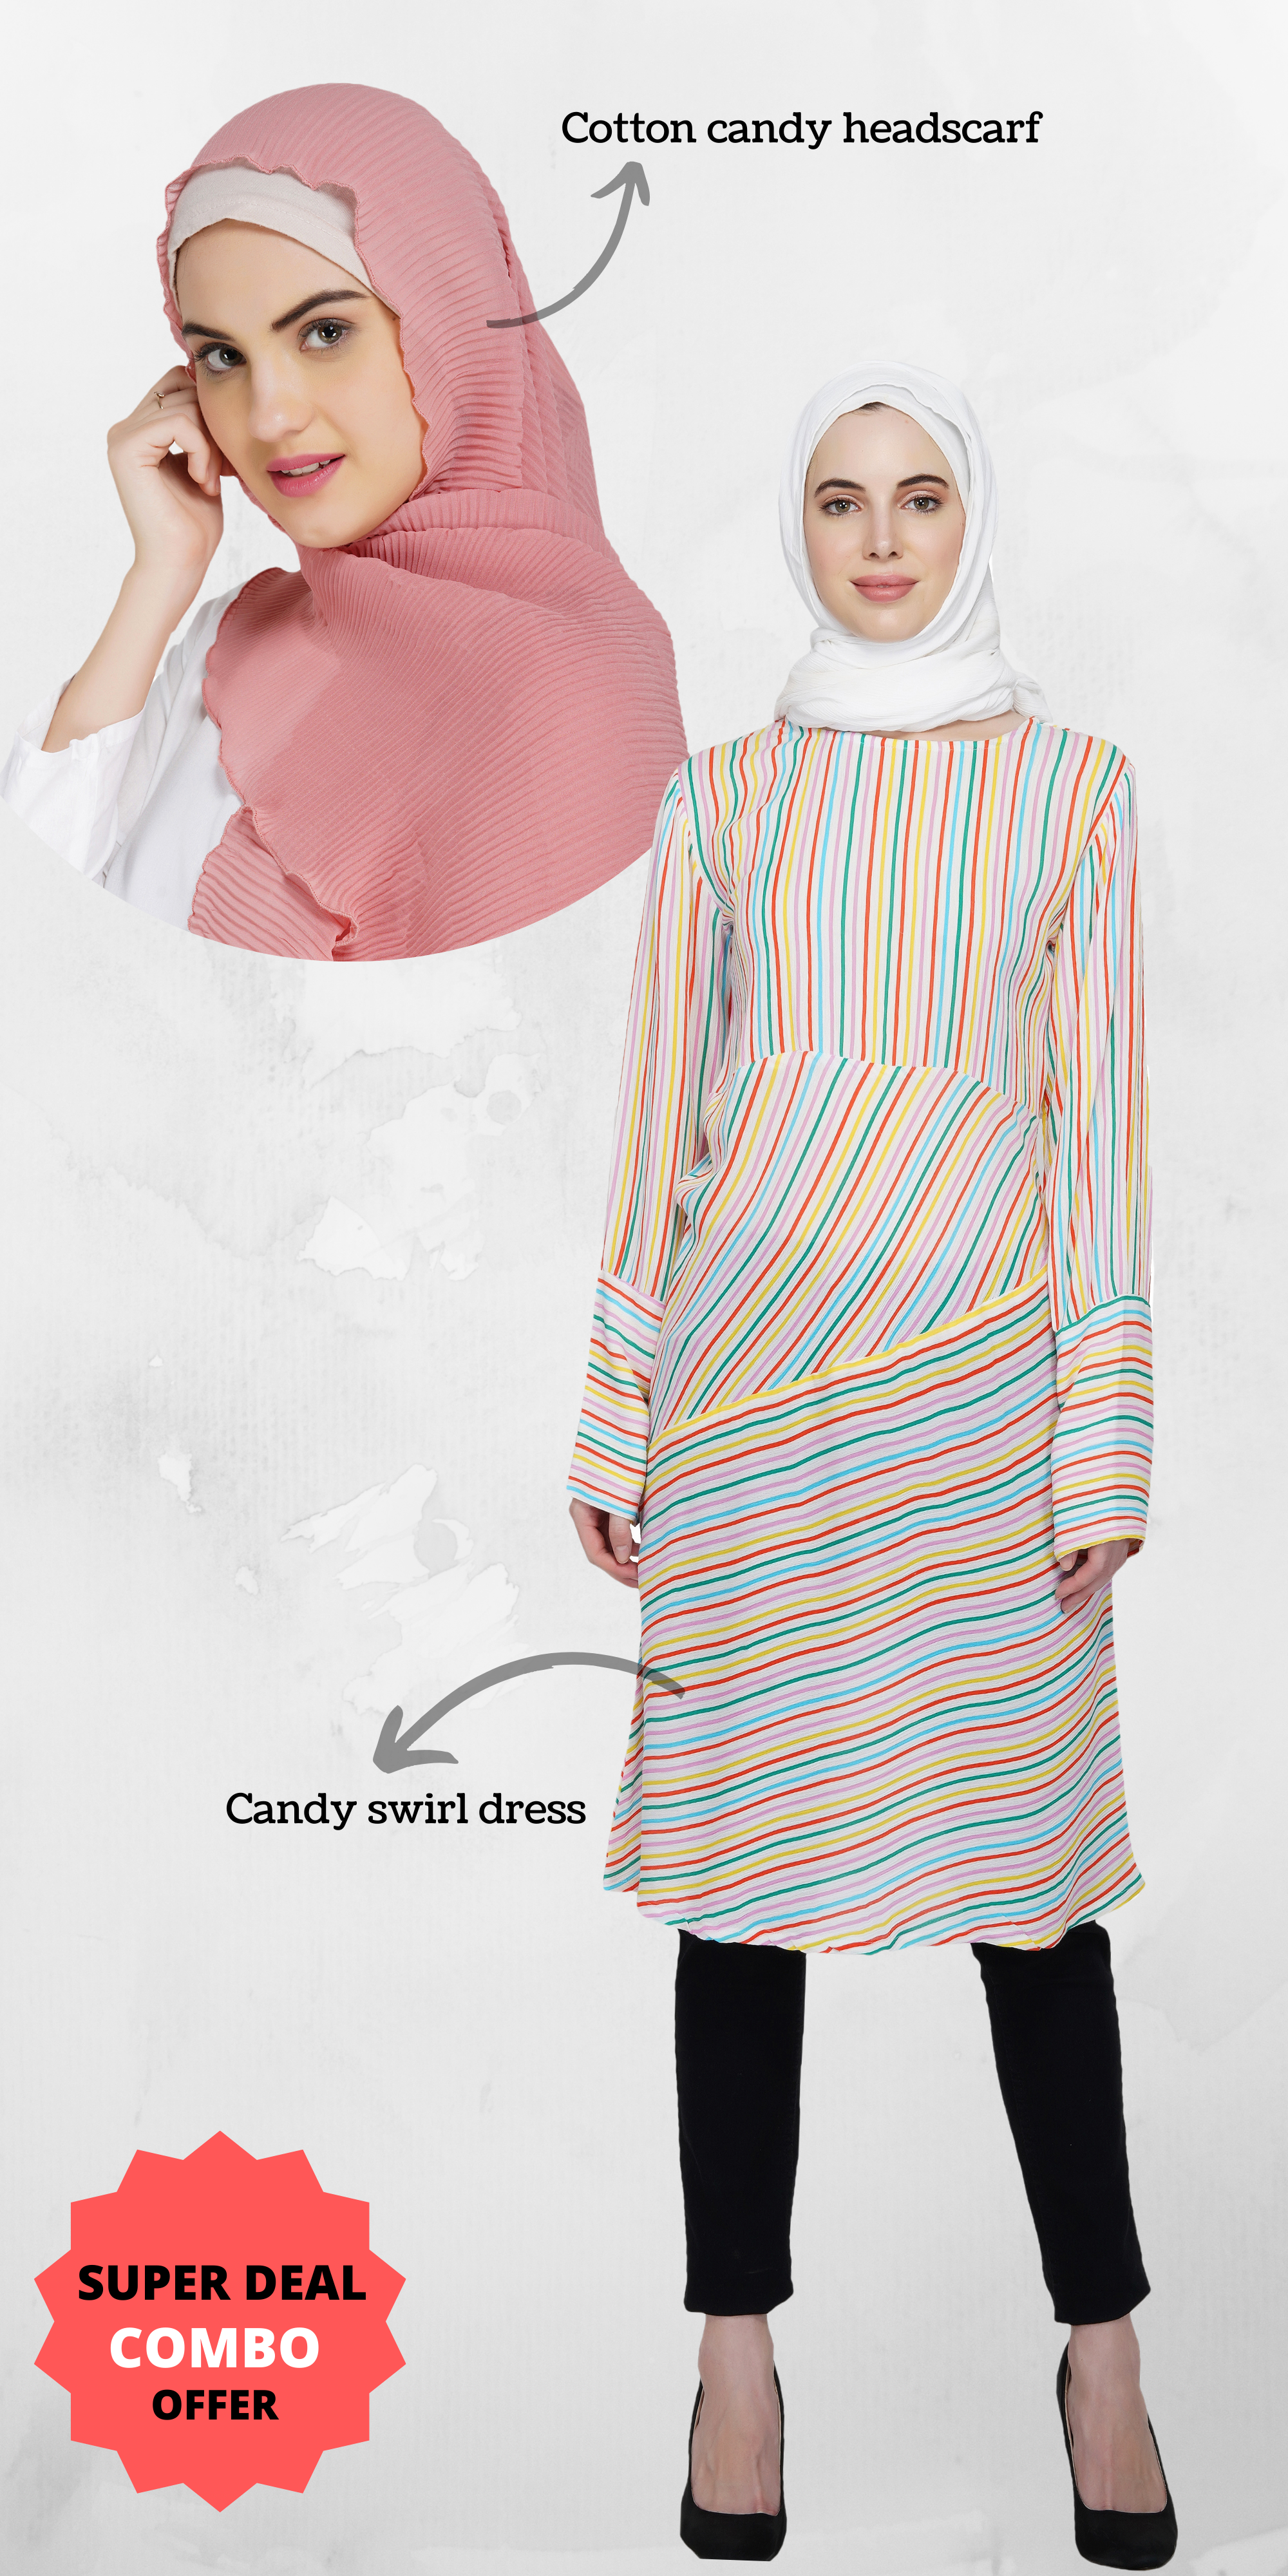 Ruqsar Candy Swirl Dress and Cotton Candy Headscarf Combo